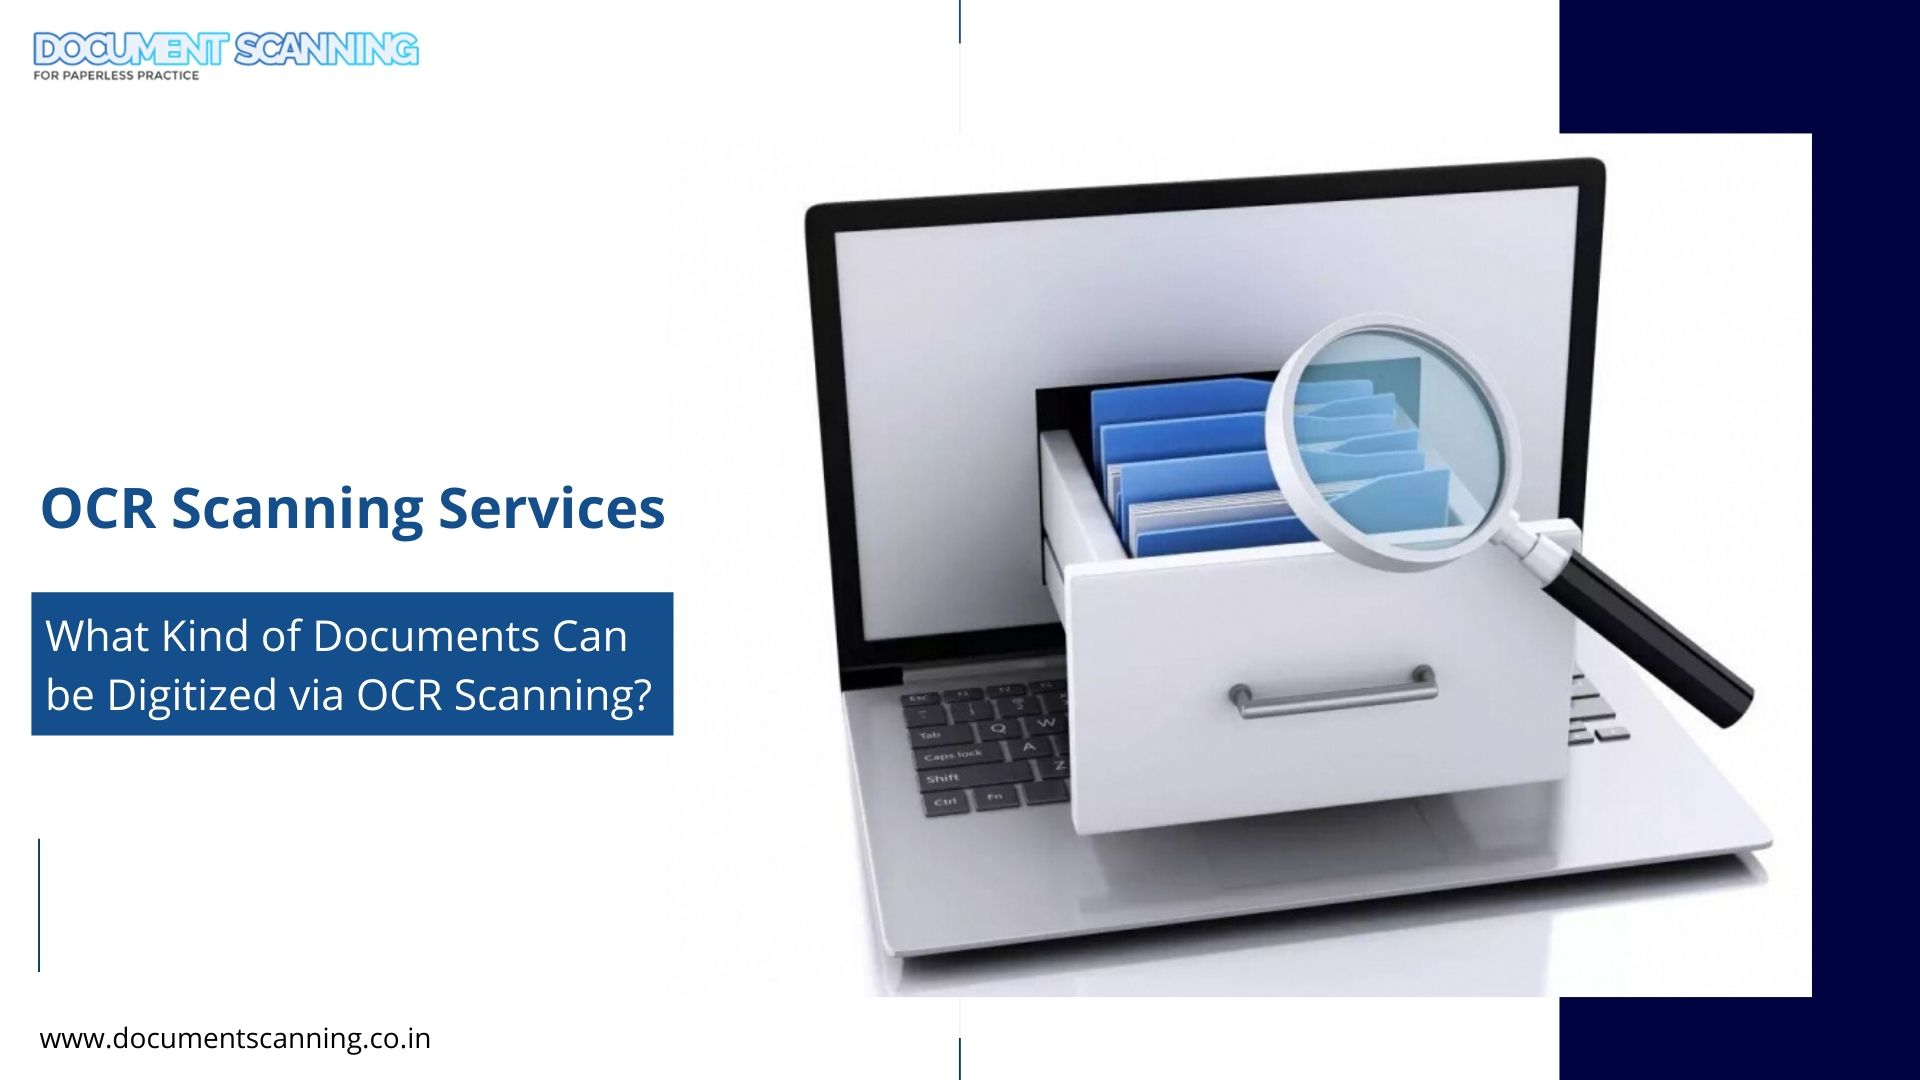 OCR Scanning Services